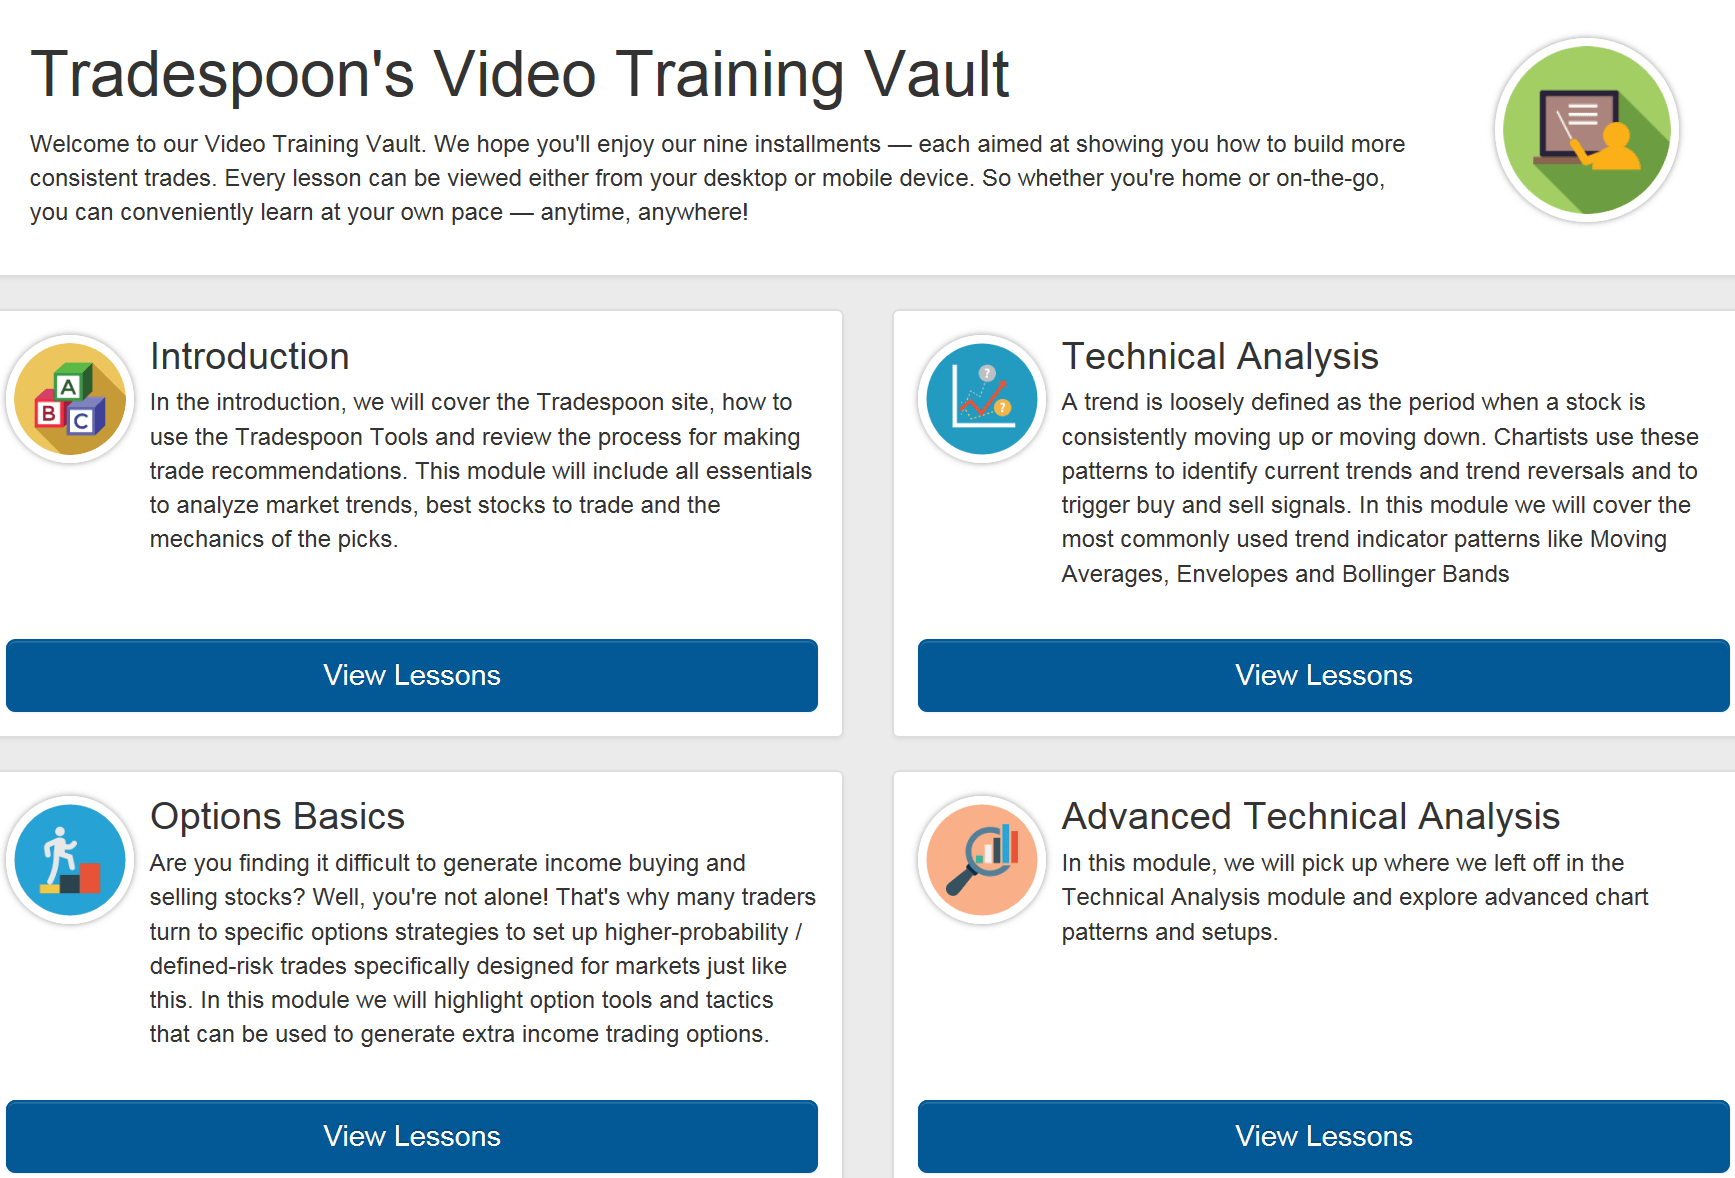 Tradespoon's Video Training Vault